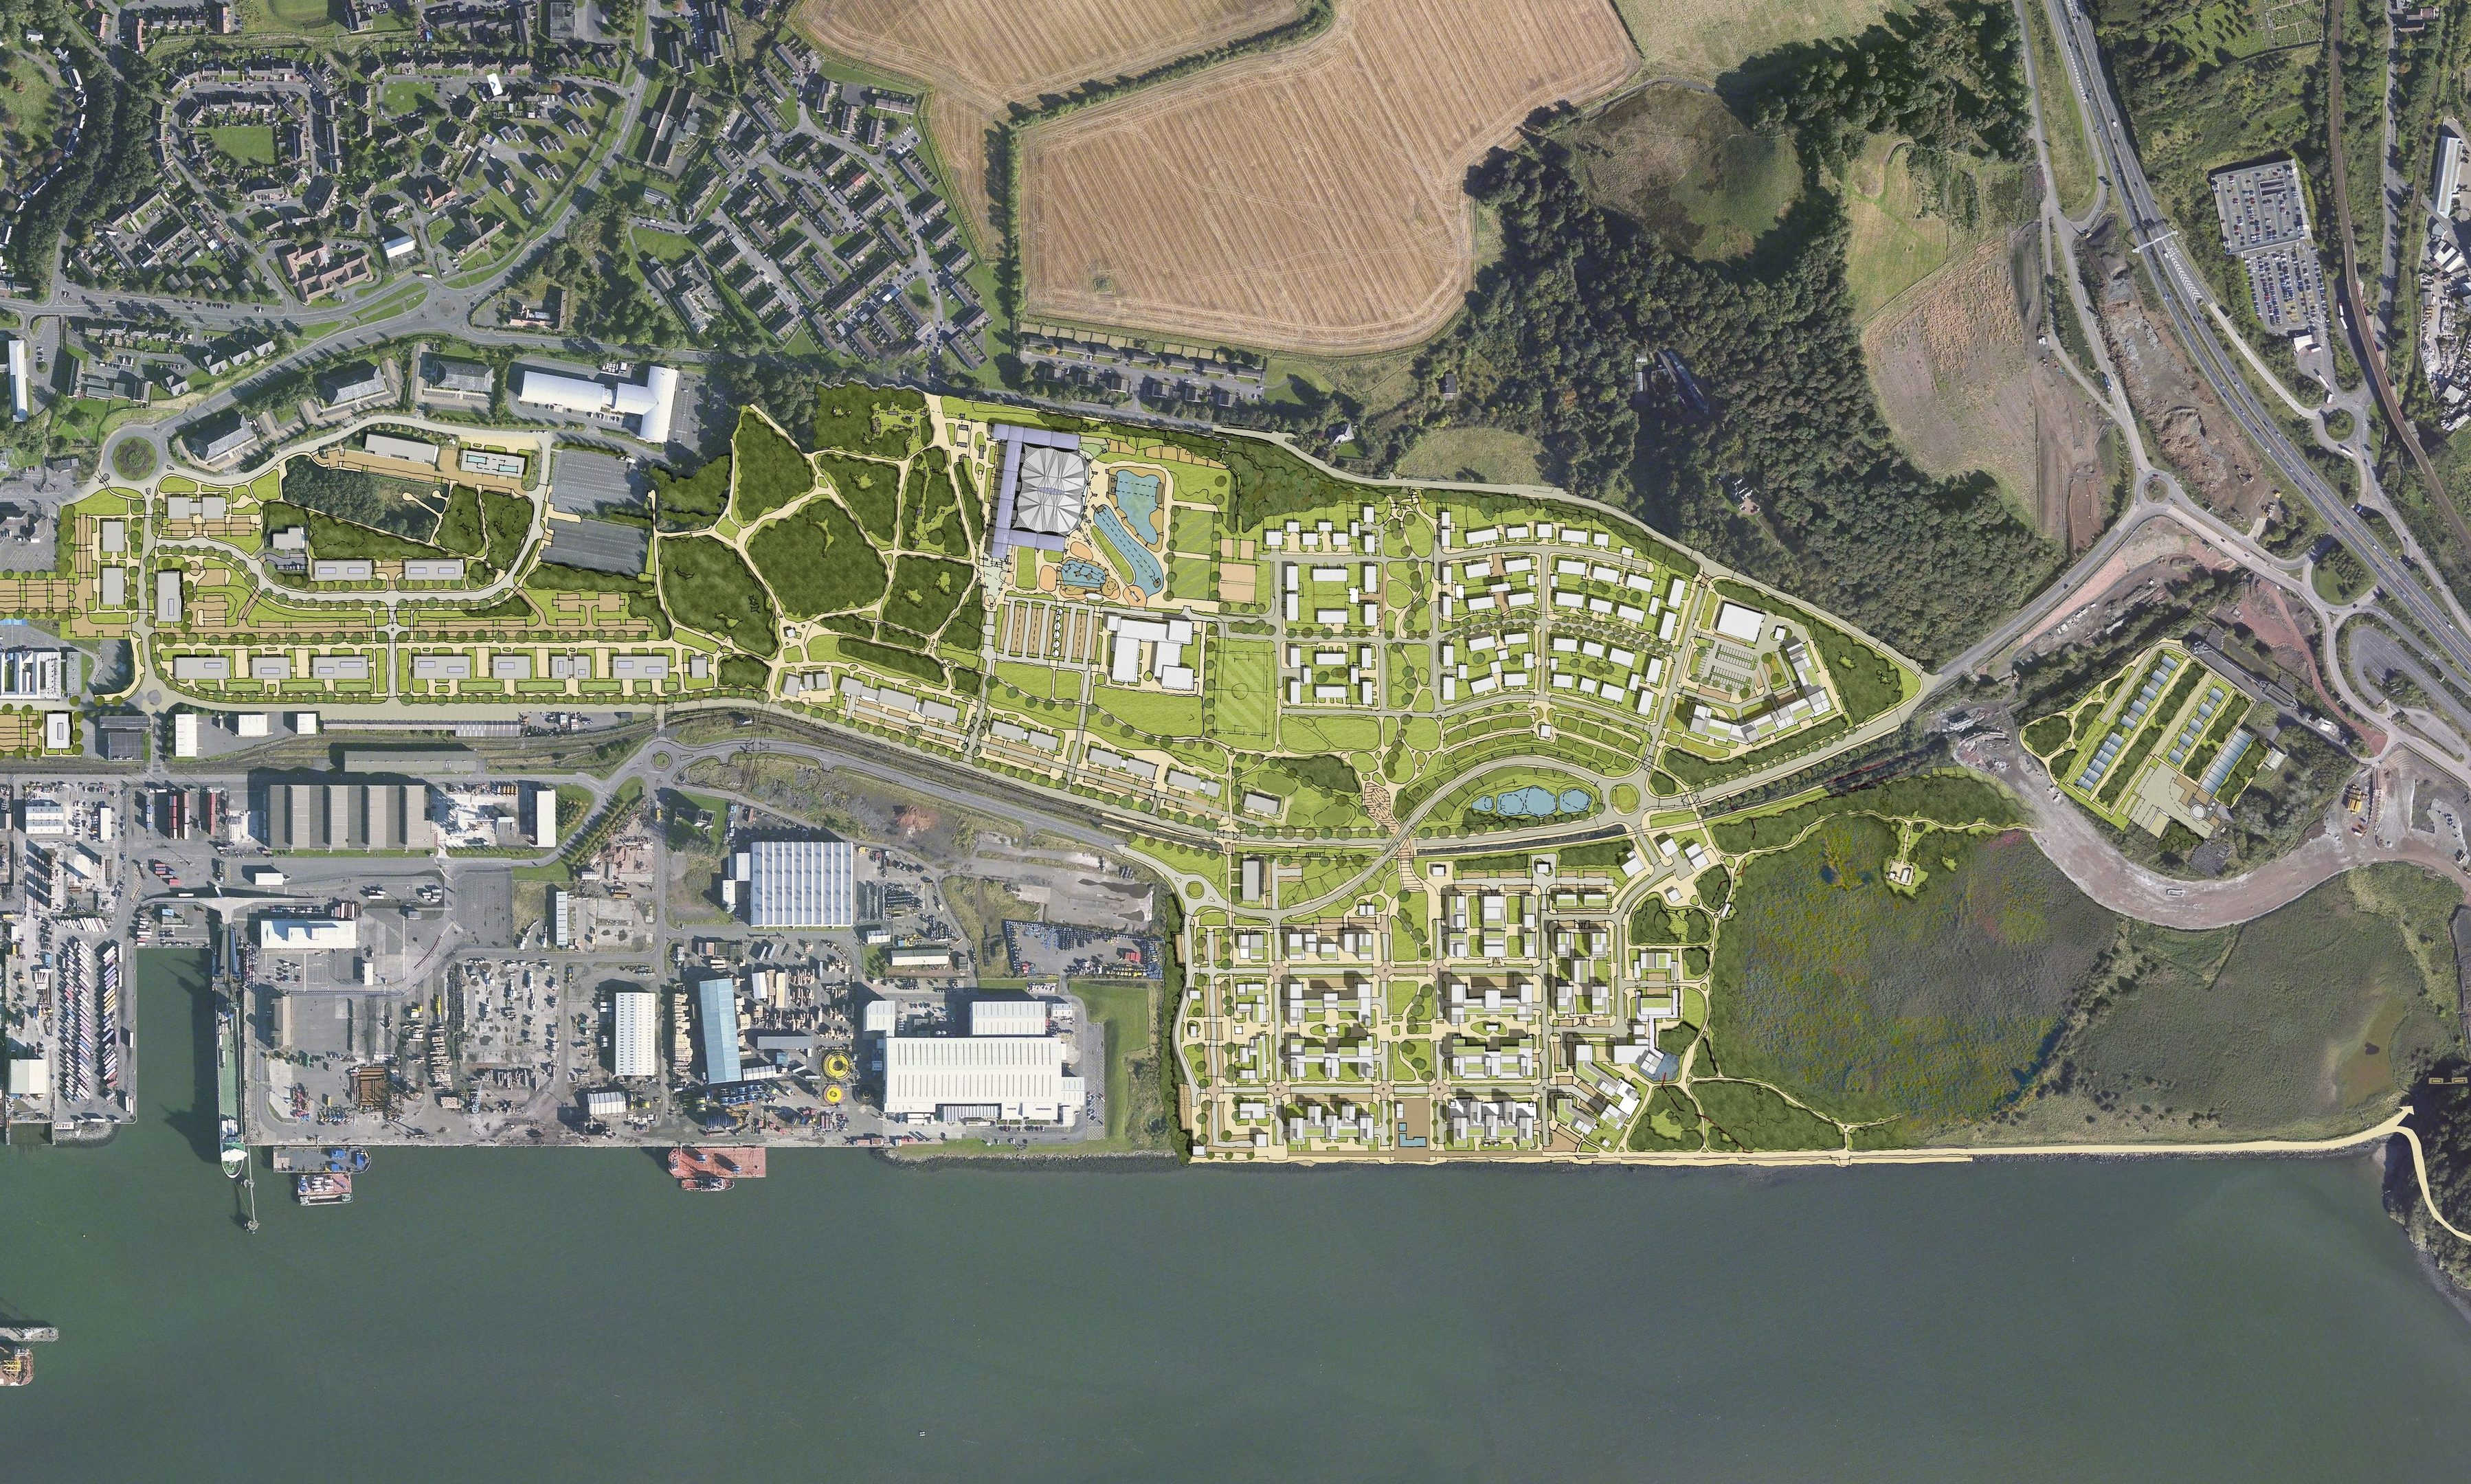 How the Rosyth waterfront could look if the £500m plans go ahead